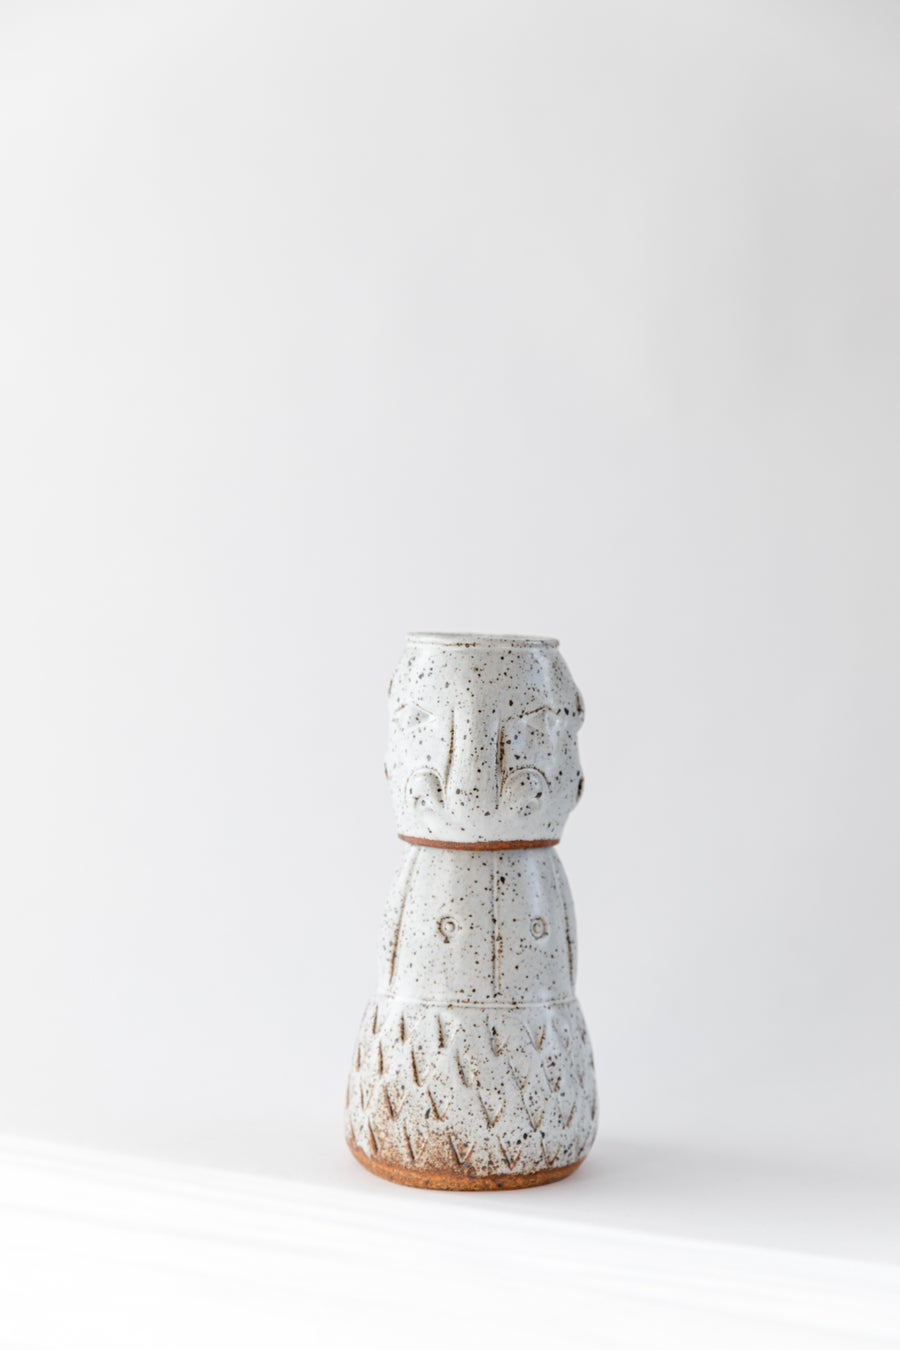 Image of Tiki Water Carafe - Speckled Gloss White Male no. 1